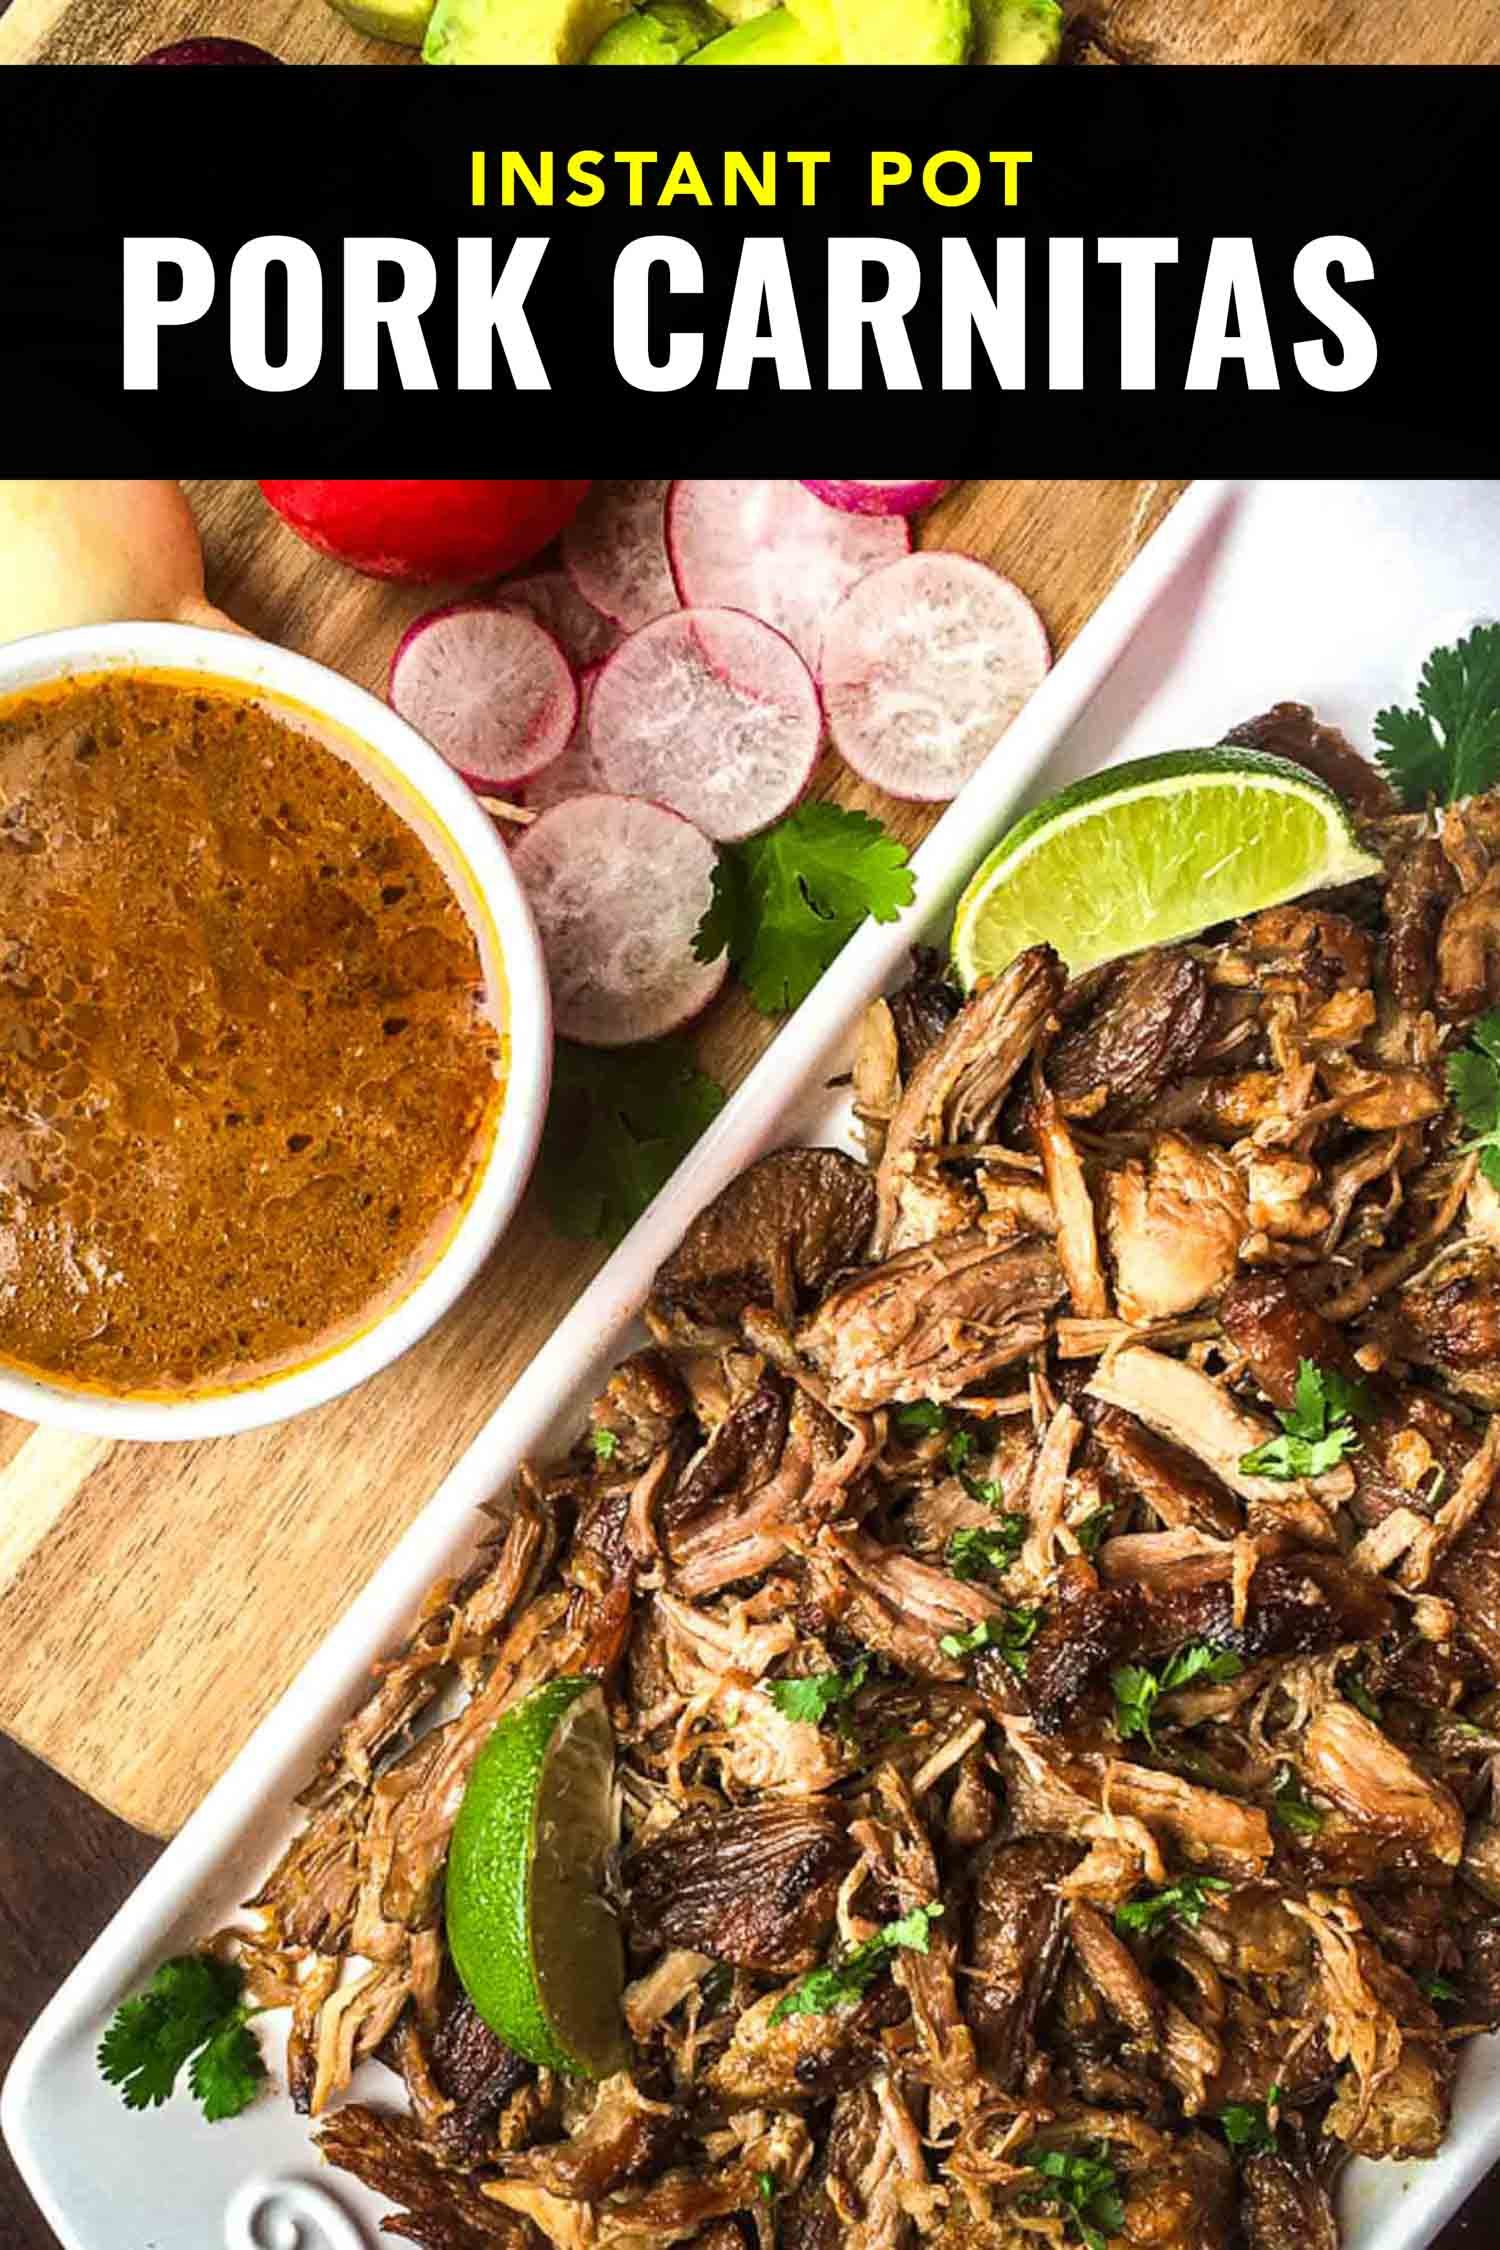 Instant pot pork carnitas on a tray with sauce, radishes and lime